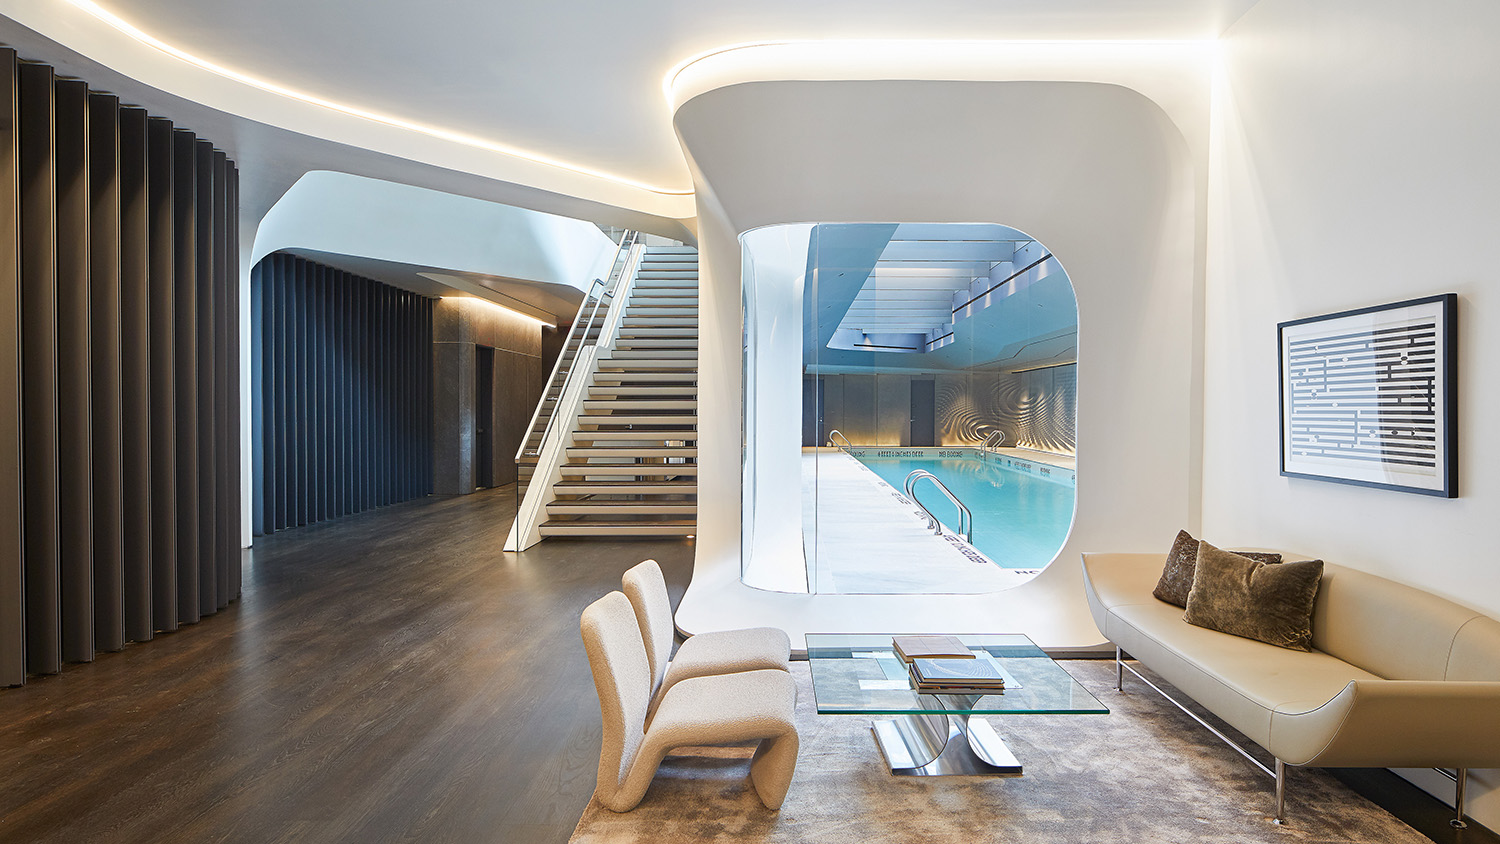 Interior view of pool Photograph by Hufton + Crow